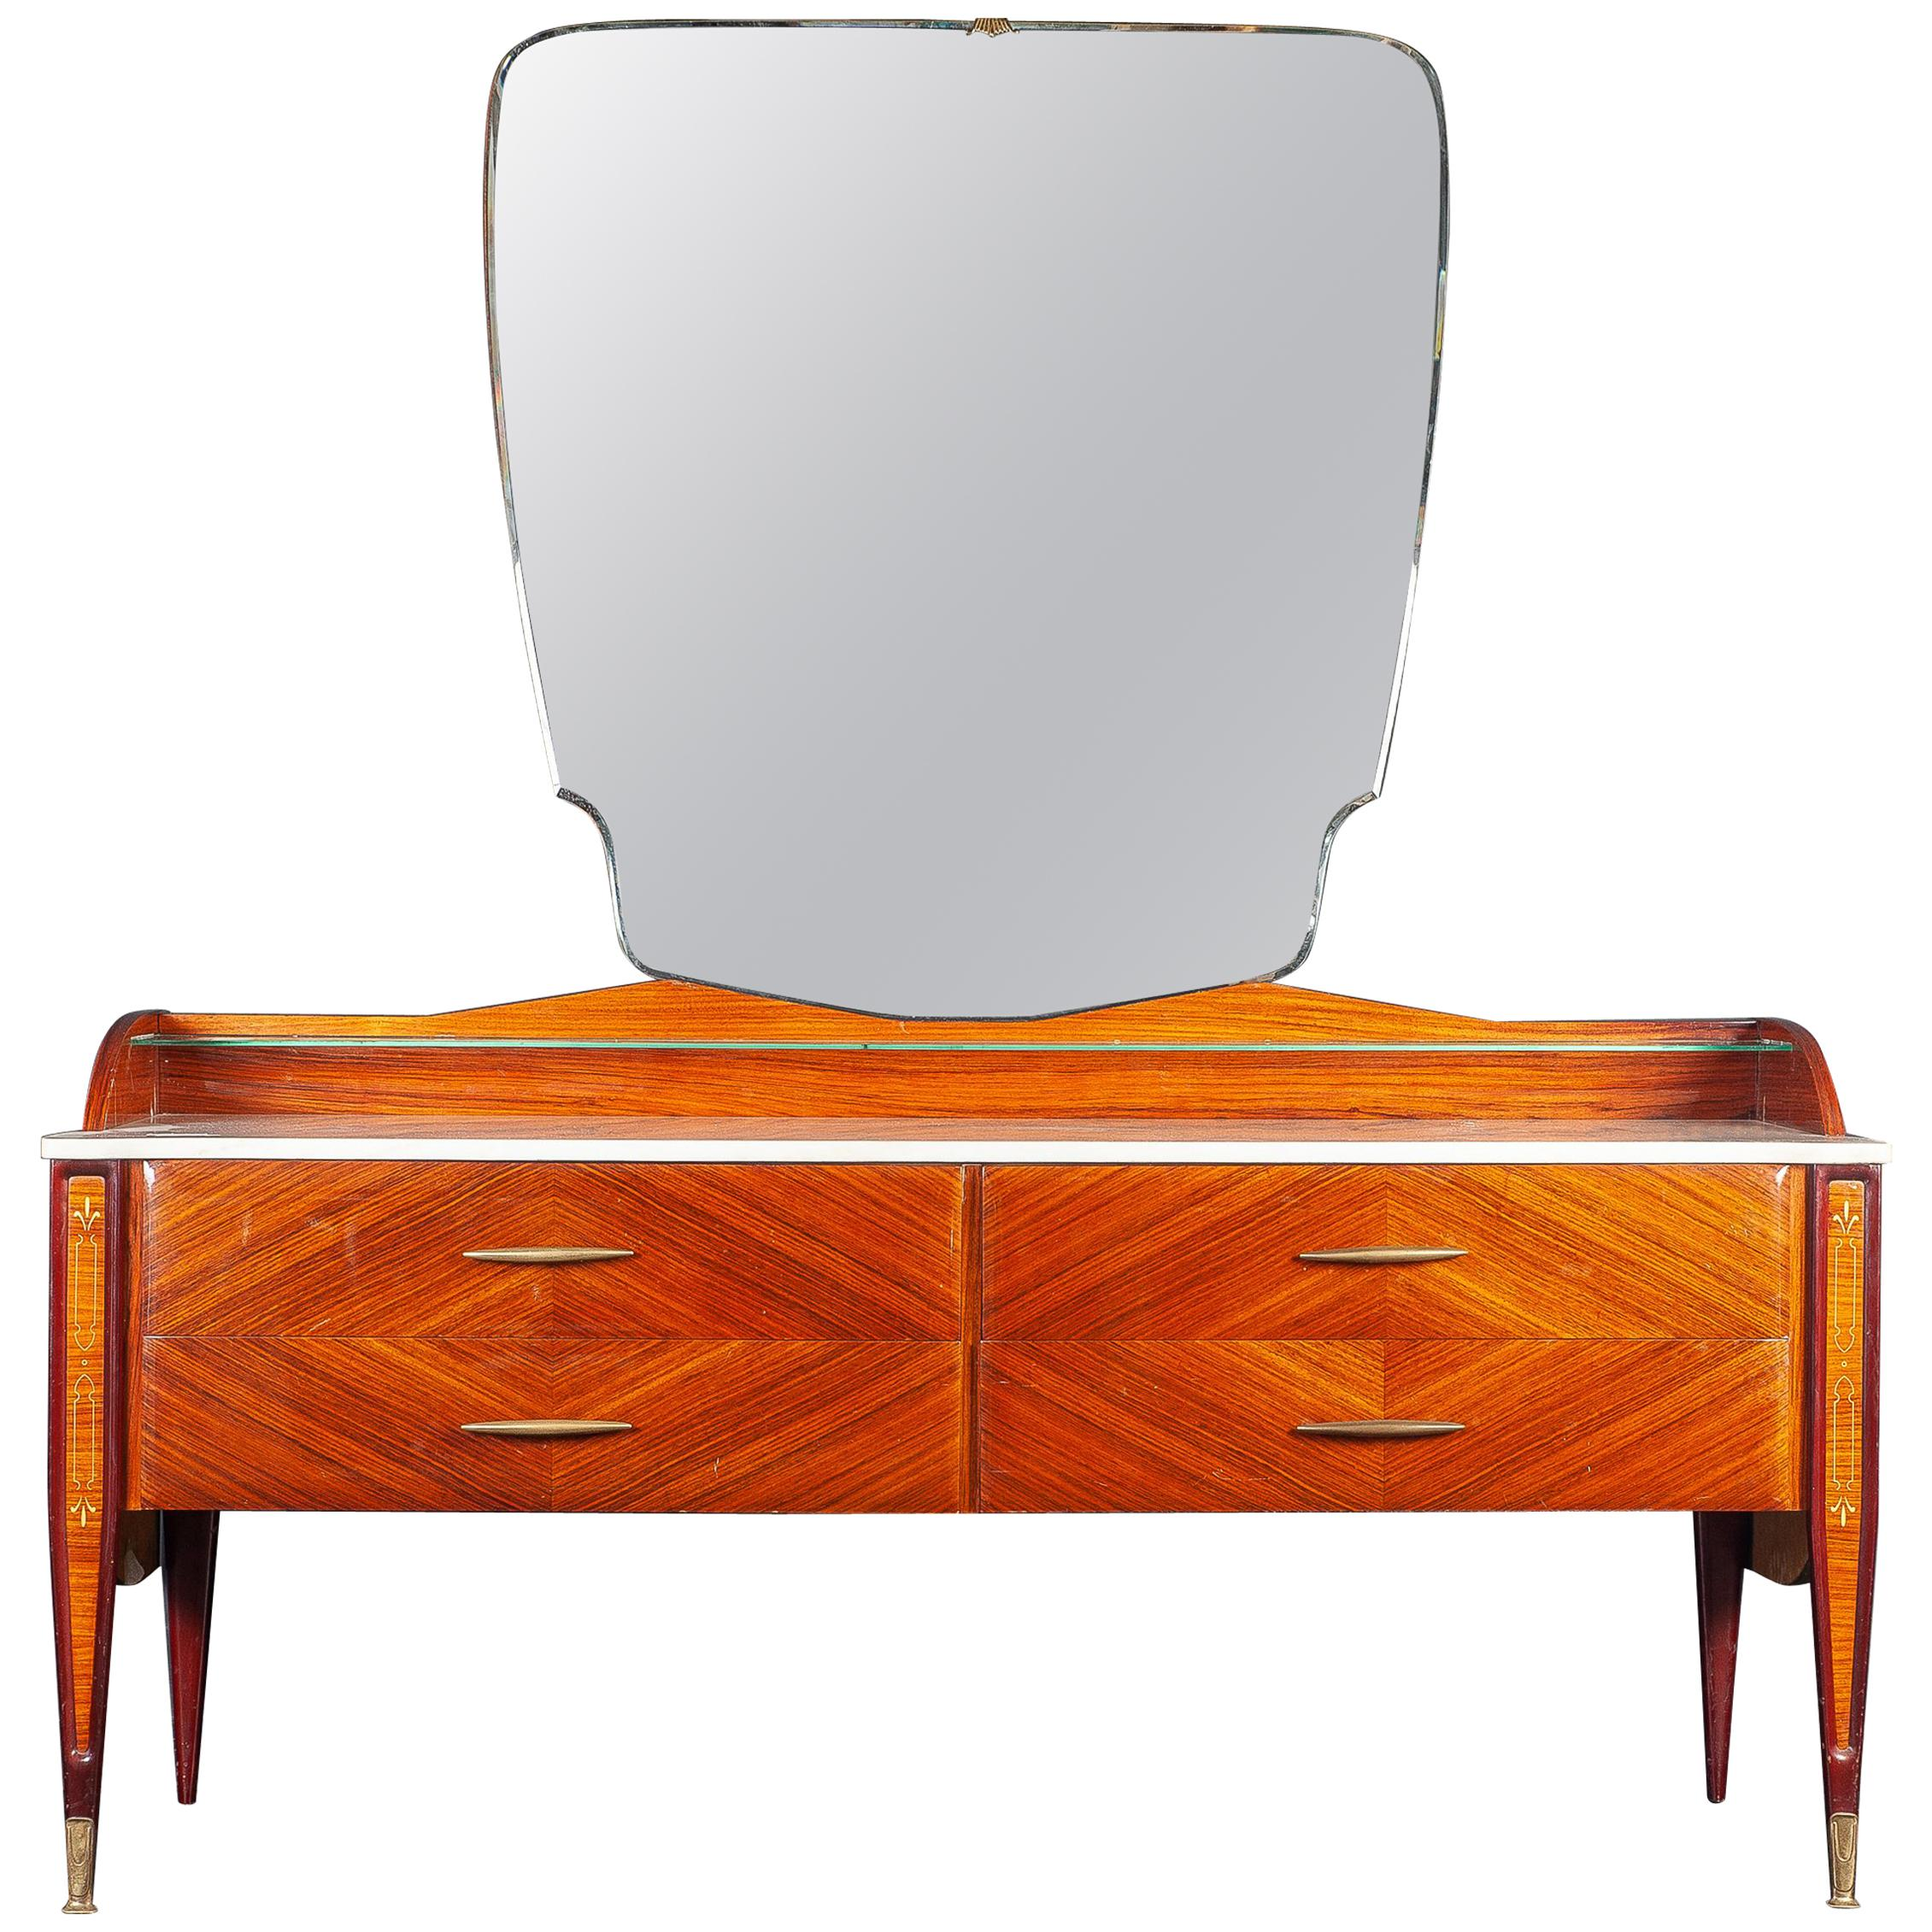 Italian Midcentury Dresser or Chest of Drawer with Carrara Marble Top, 1970